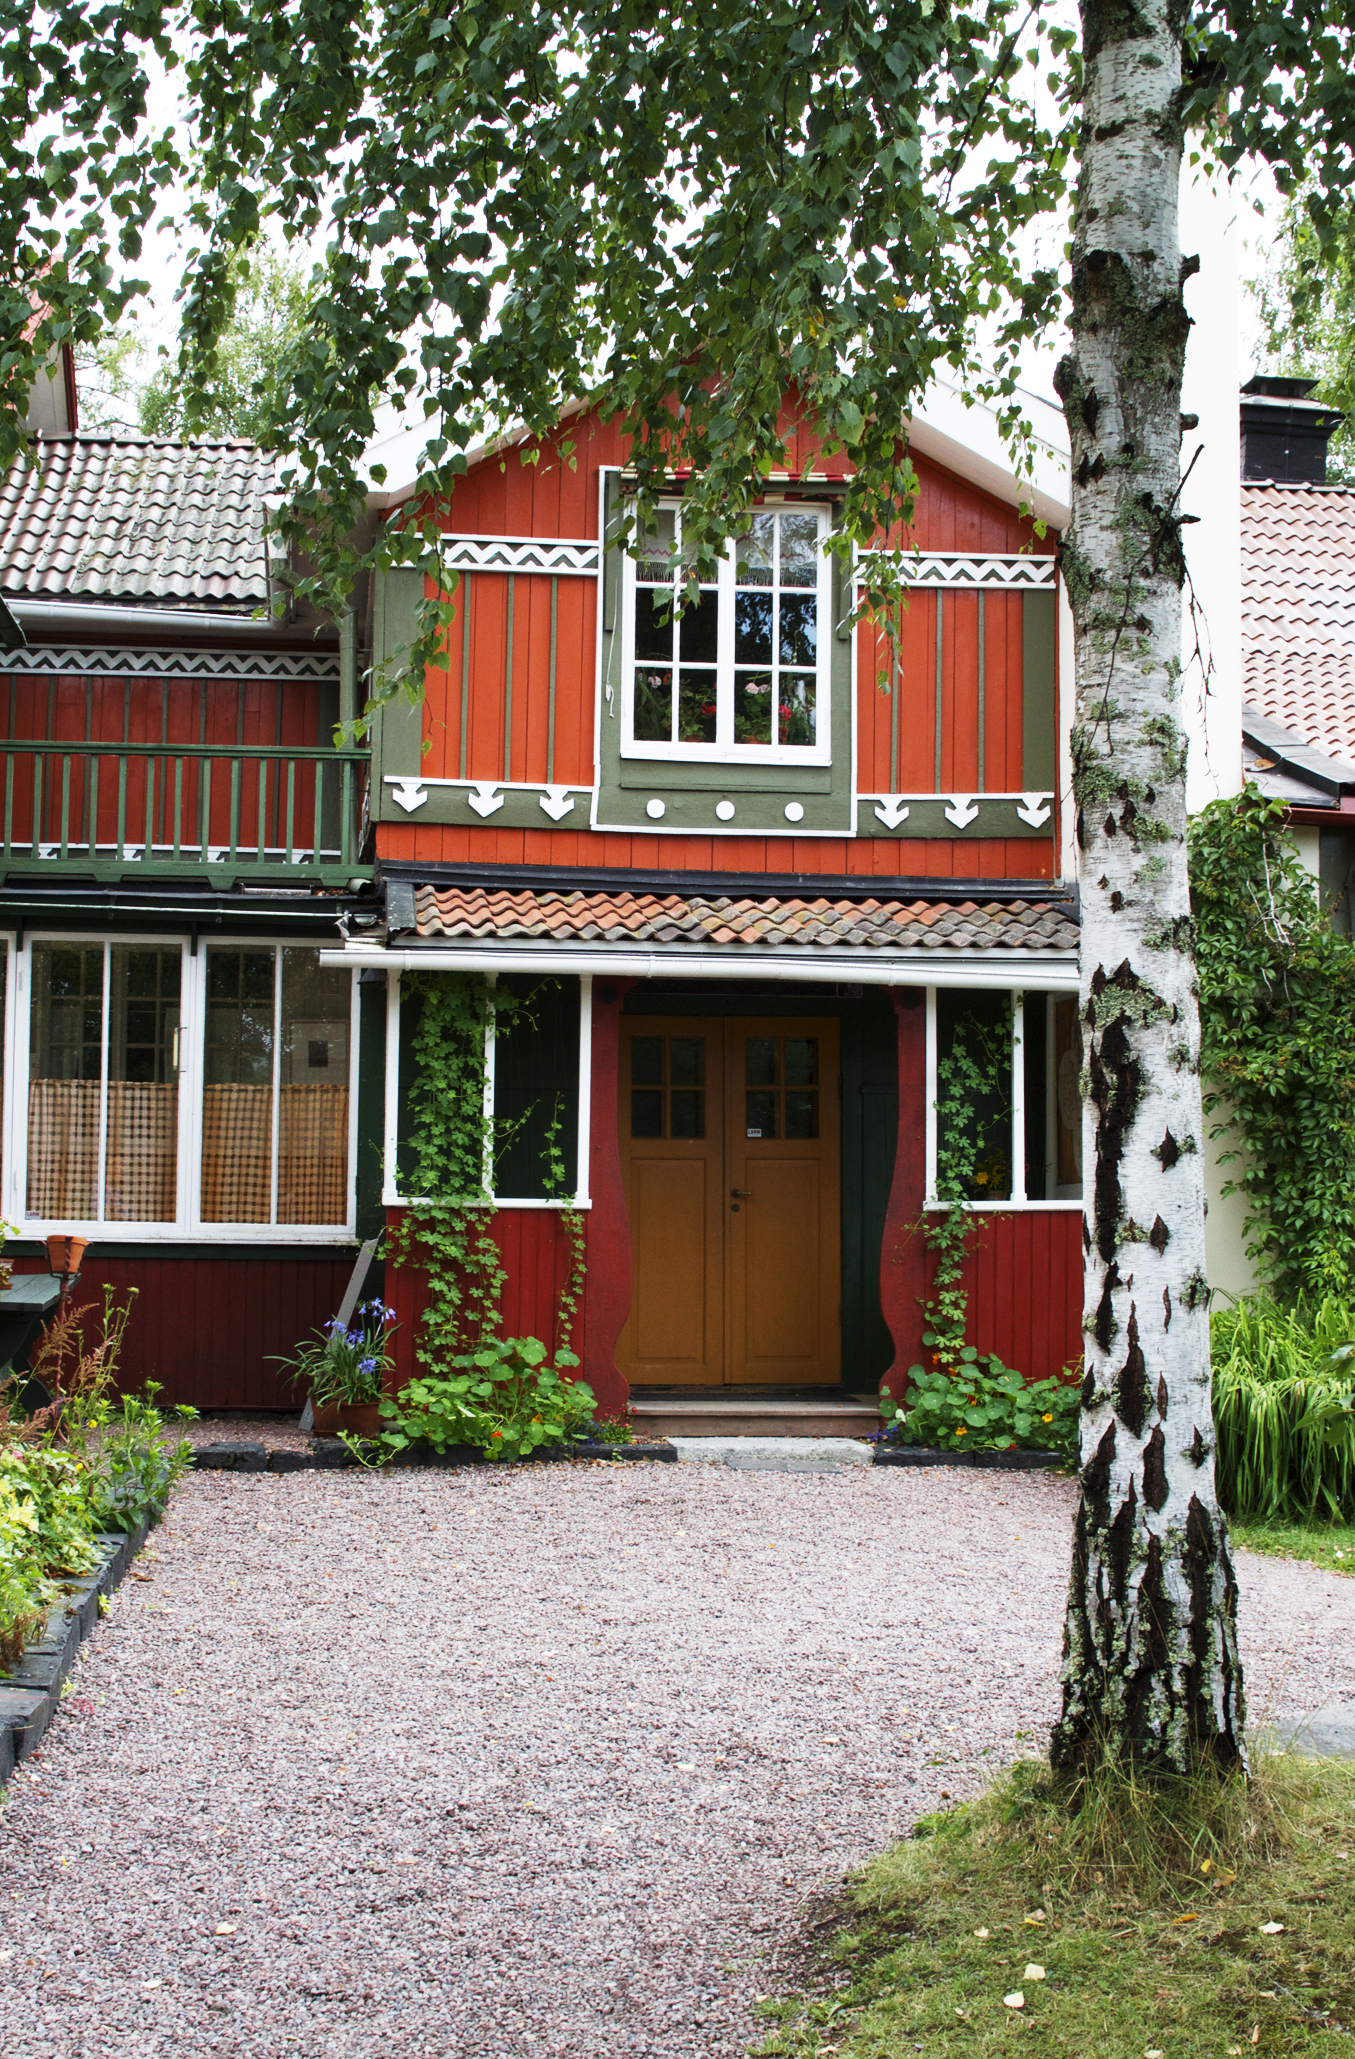 carl larsson's house